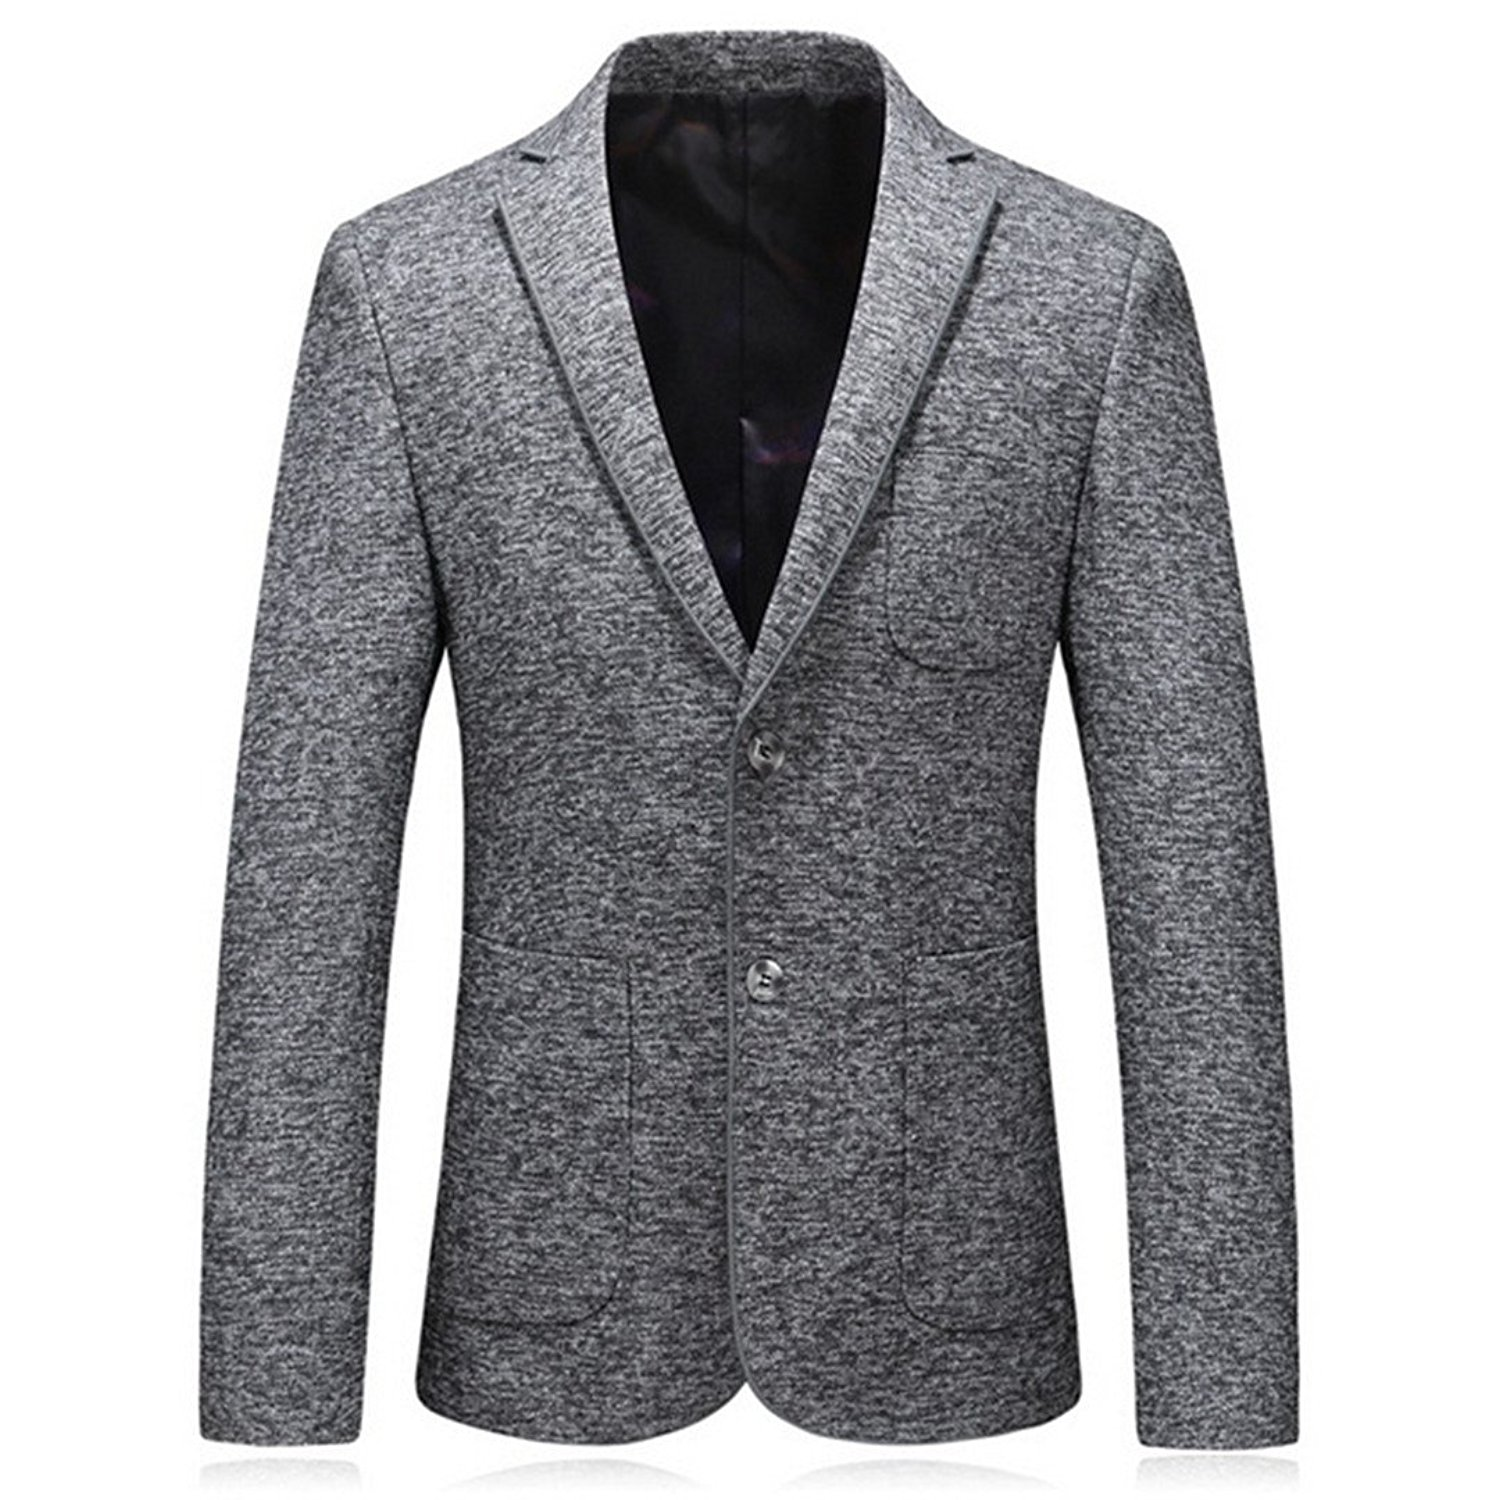 861d7532b Get Quotations · Suite Slim Suit Jacket Fashion New Men's Casual Jacket Two  Chinese Style Suit Jacket